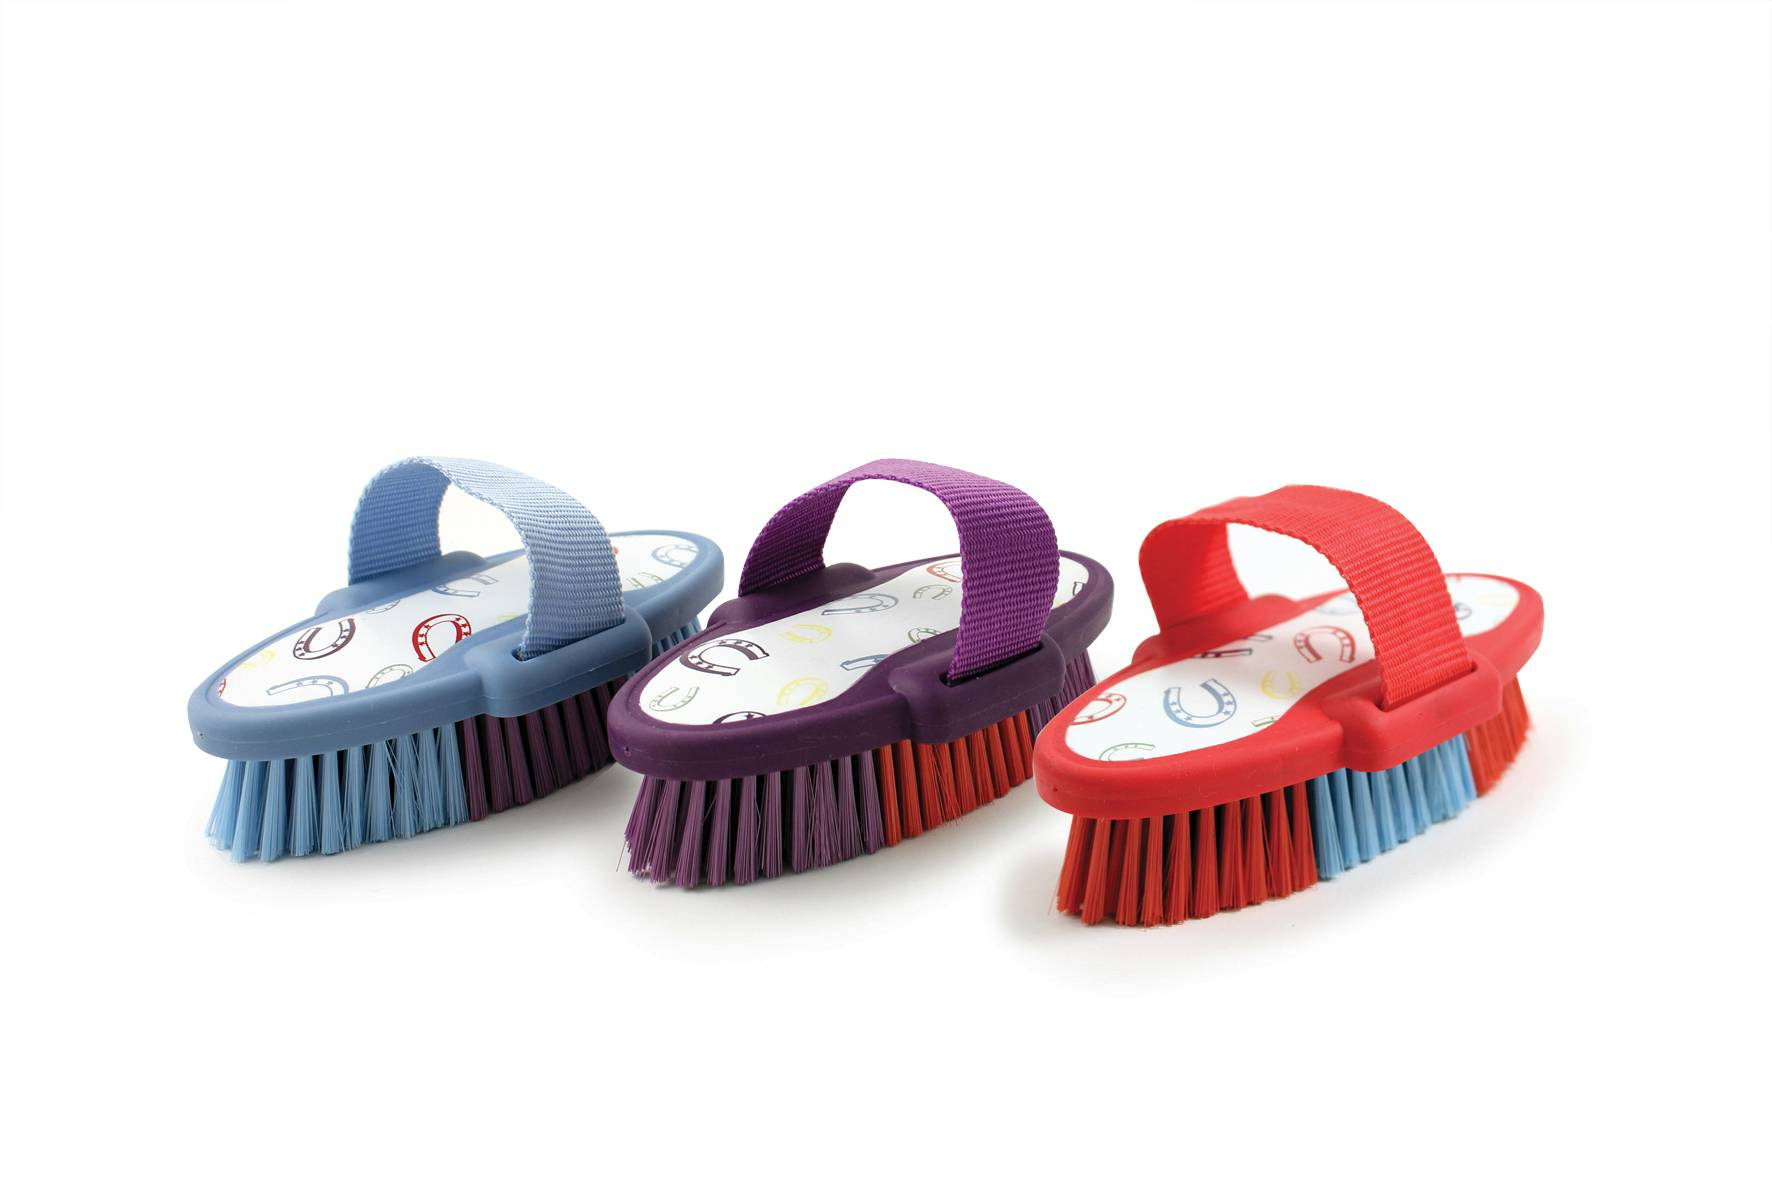 HorseShoes Small Body Brush